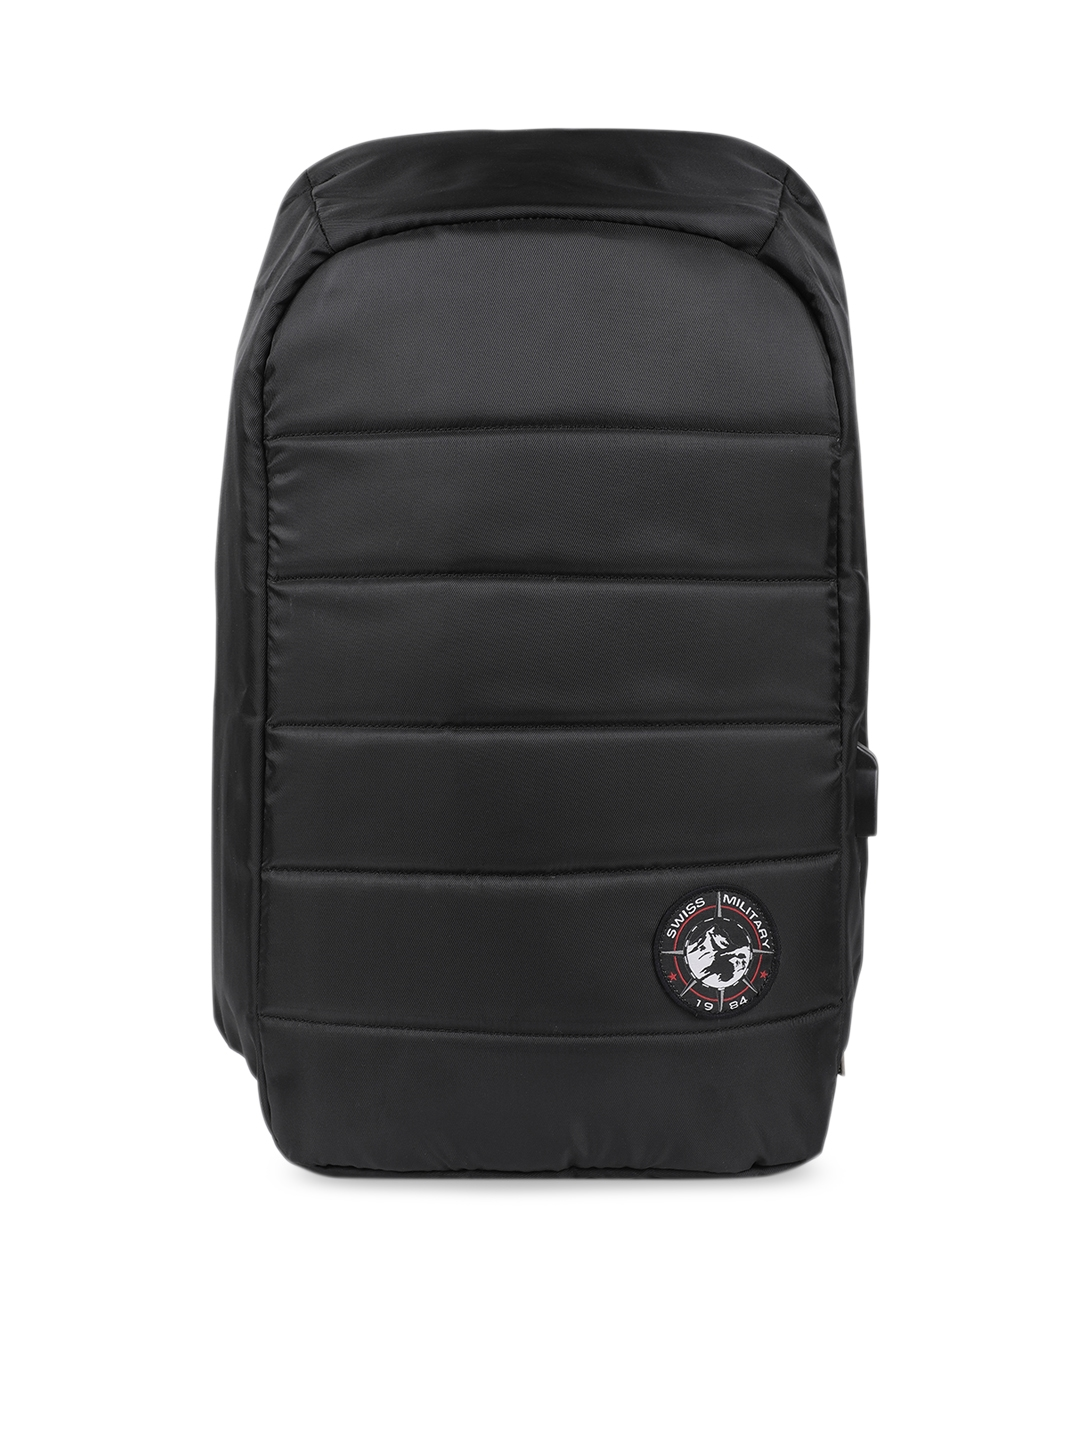 SWISS MILITARY Unisex Black   Black Solid Backpack